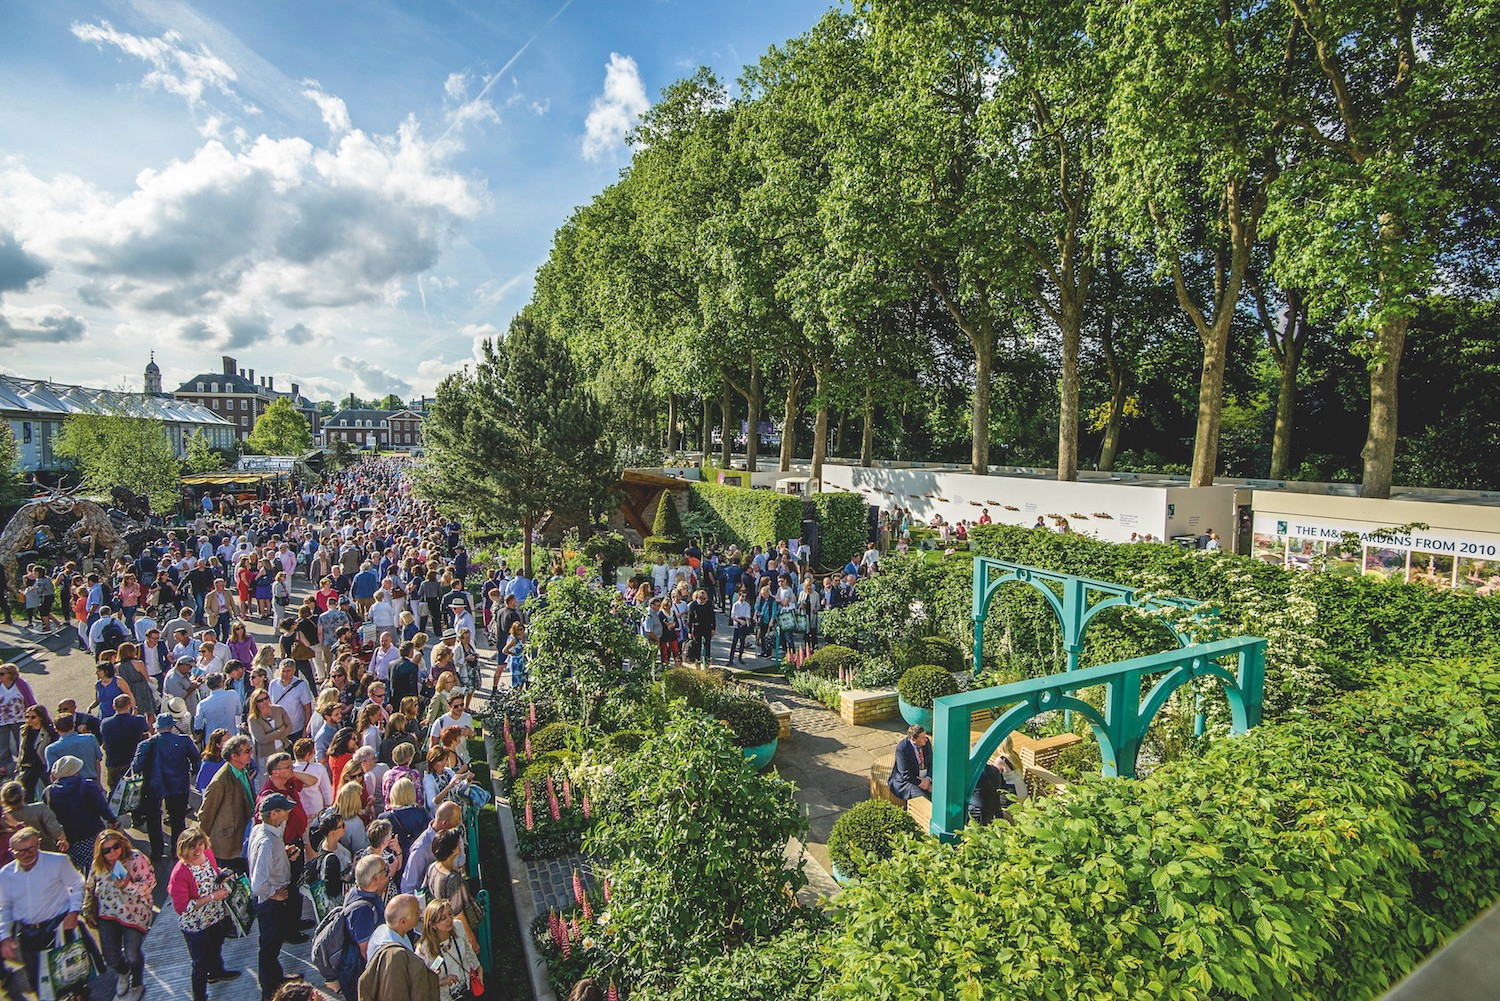 Crowds flock along Main Avenue at RHS Chelsea Flower Show 2017 and view the 500 Years of Covent Garden: The Sir Simon Milton Foundation Garden.